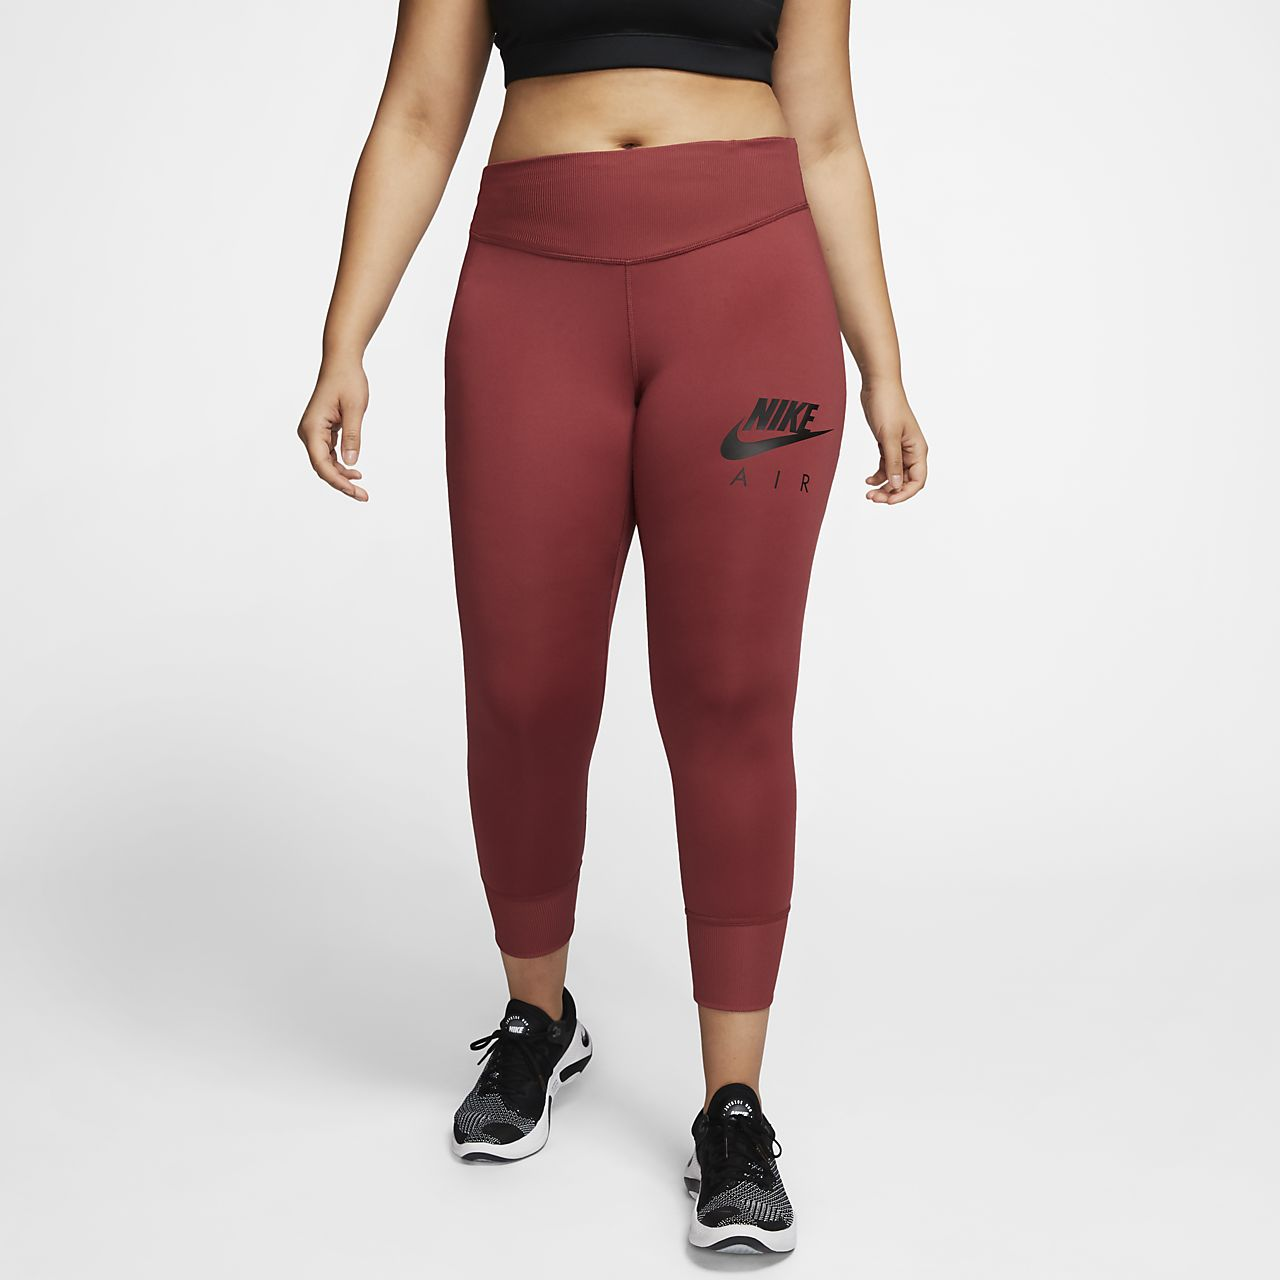 Nike Fast Women's 7/8 Running Tights (Plus Size)